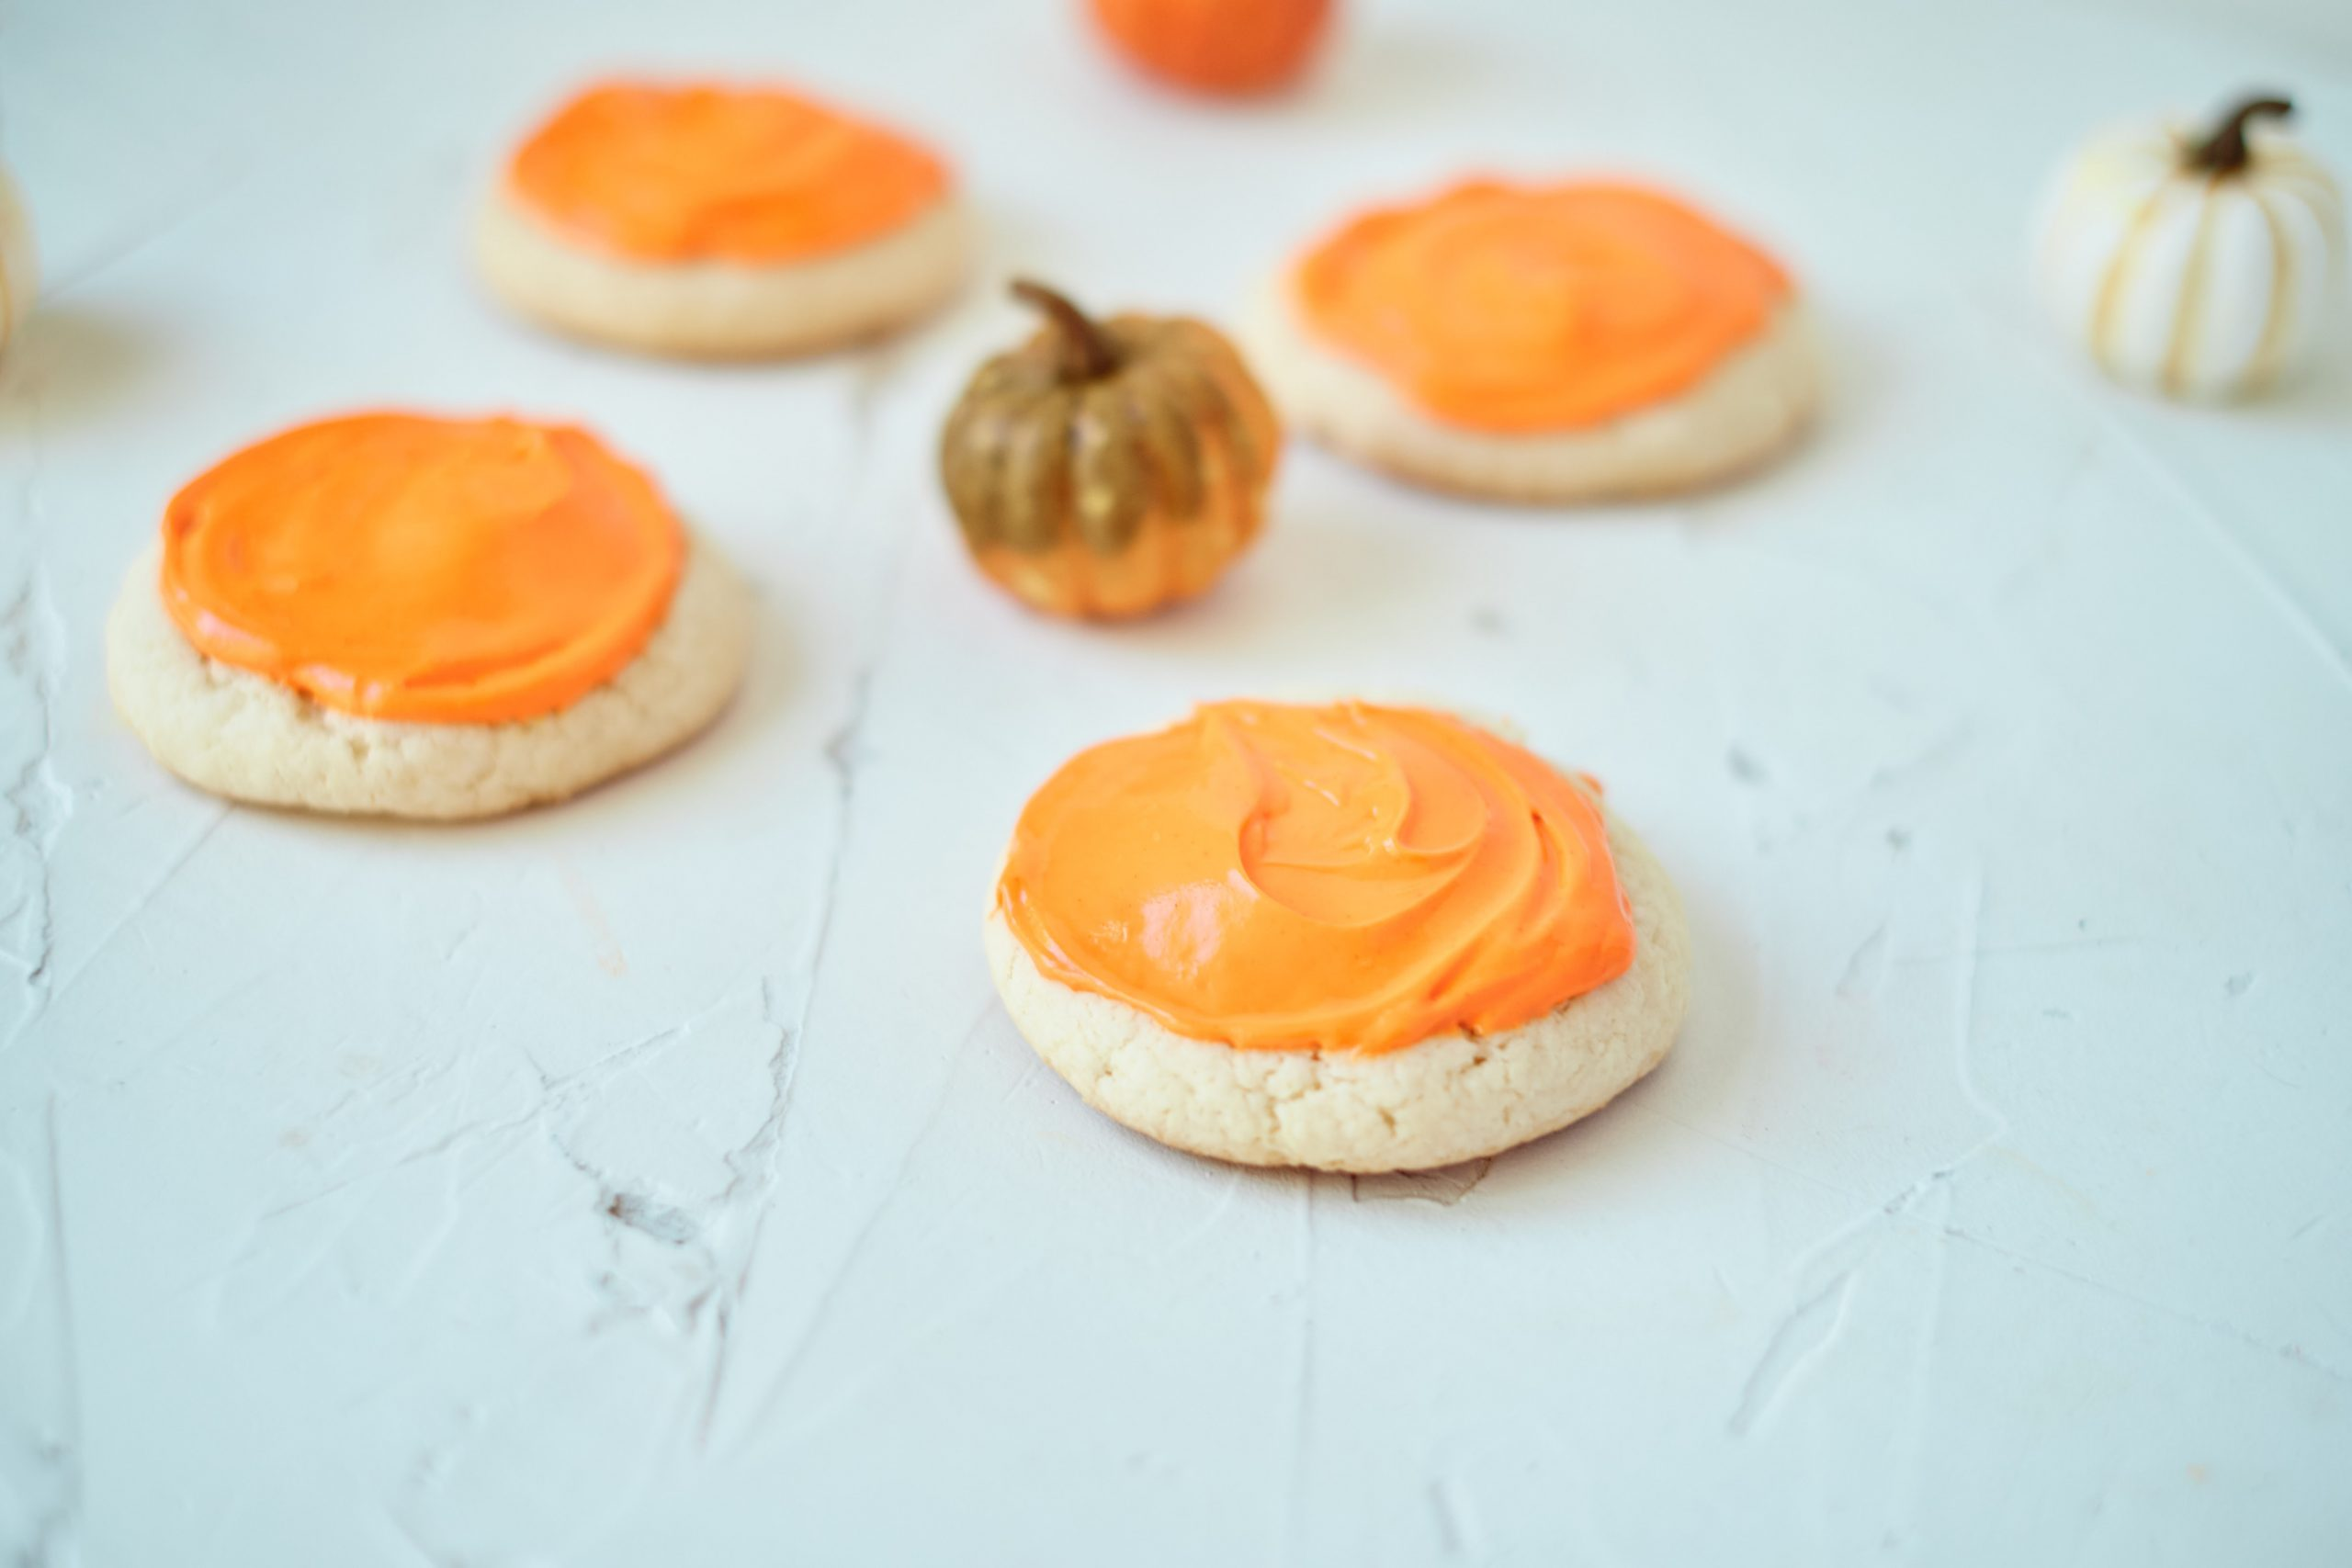 Four Vanilla Pumpkin Cookies on a white table with small pumpkins in the background